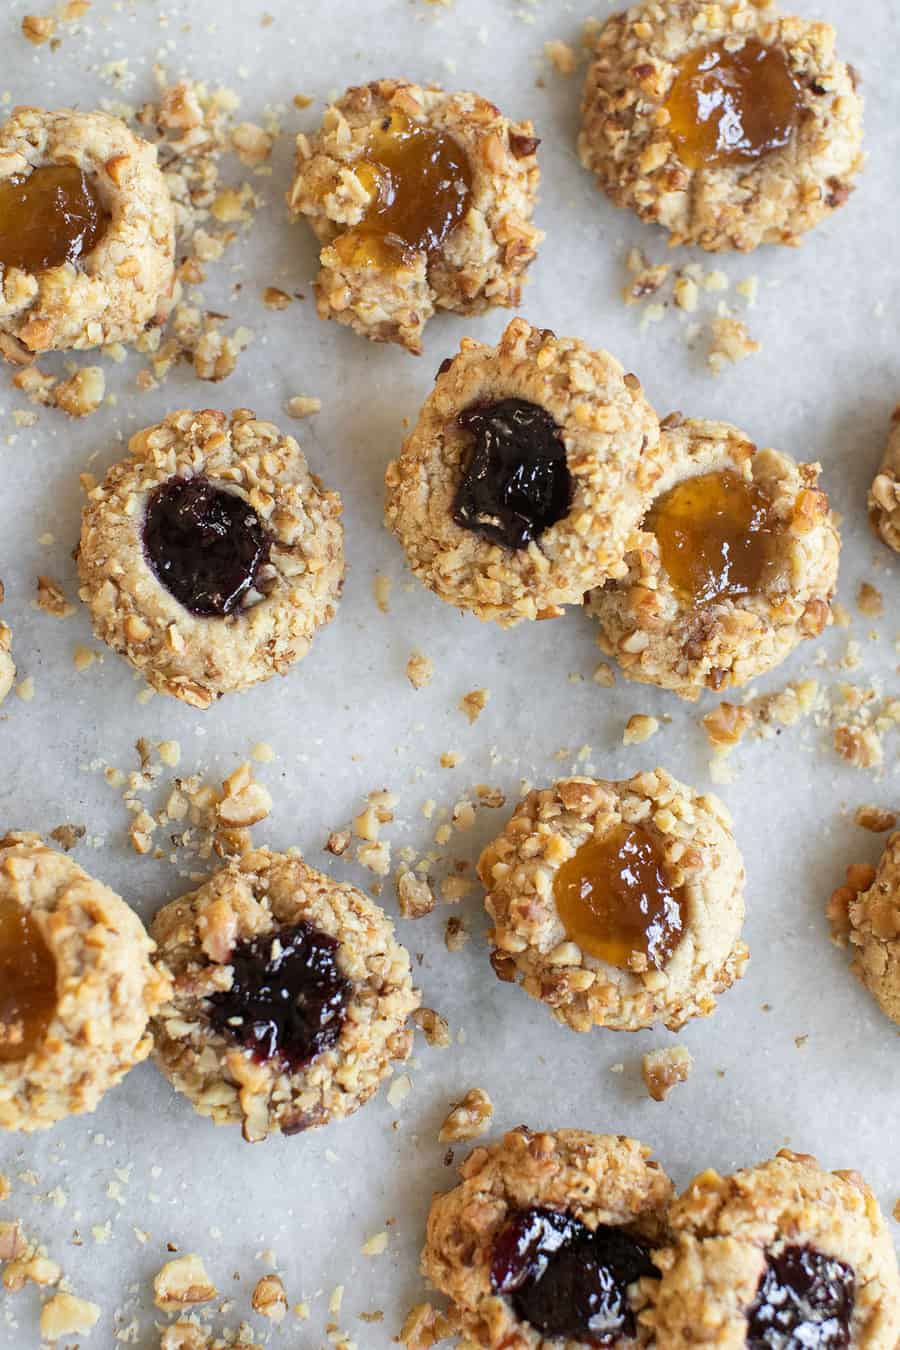 Thumbprint cookie recipe filled with jam.